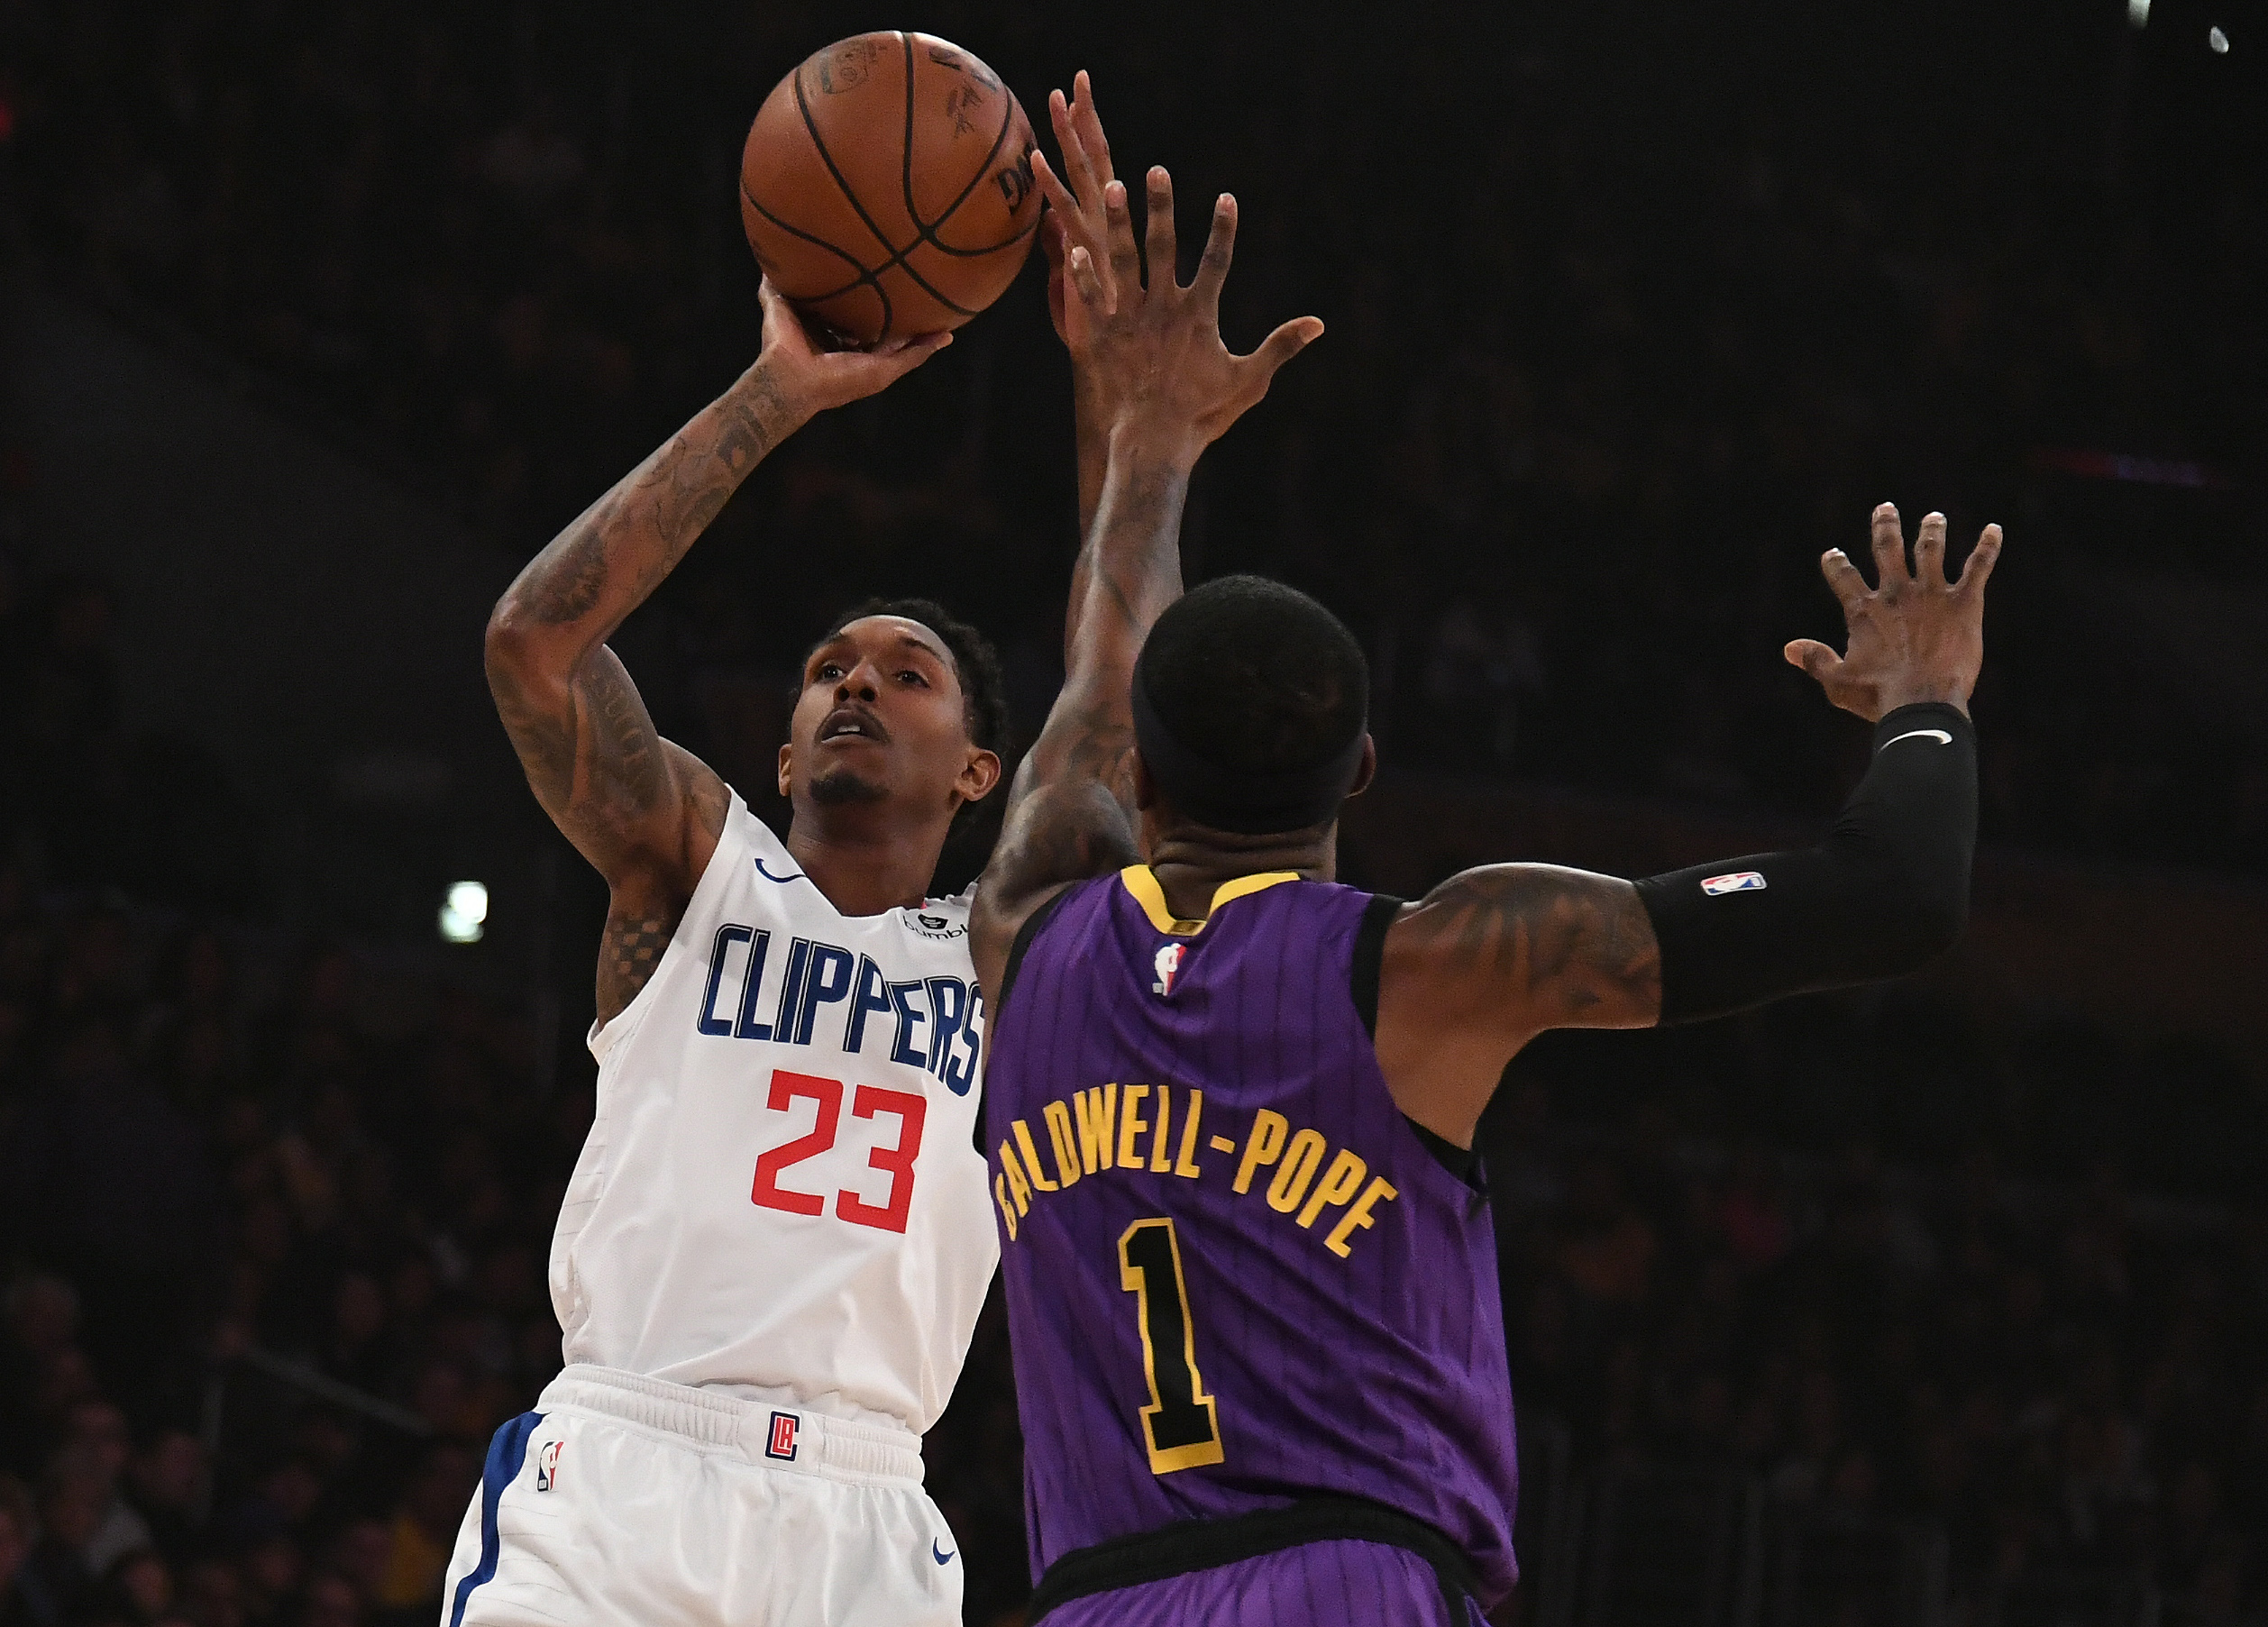 Clippers continue to own Lakers 118-107